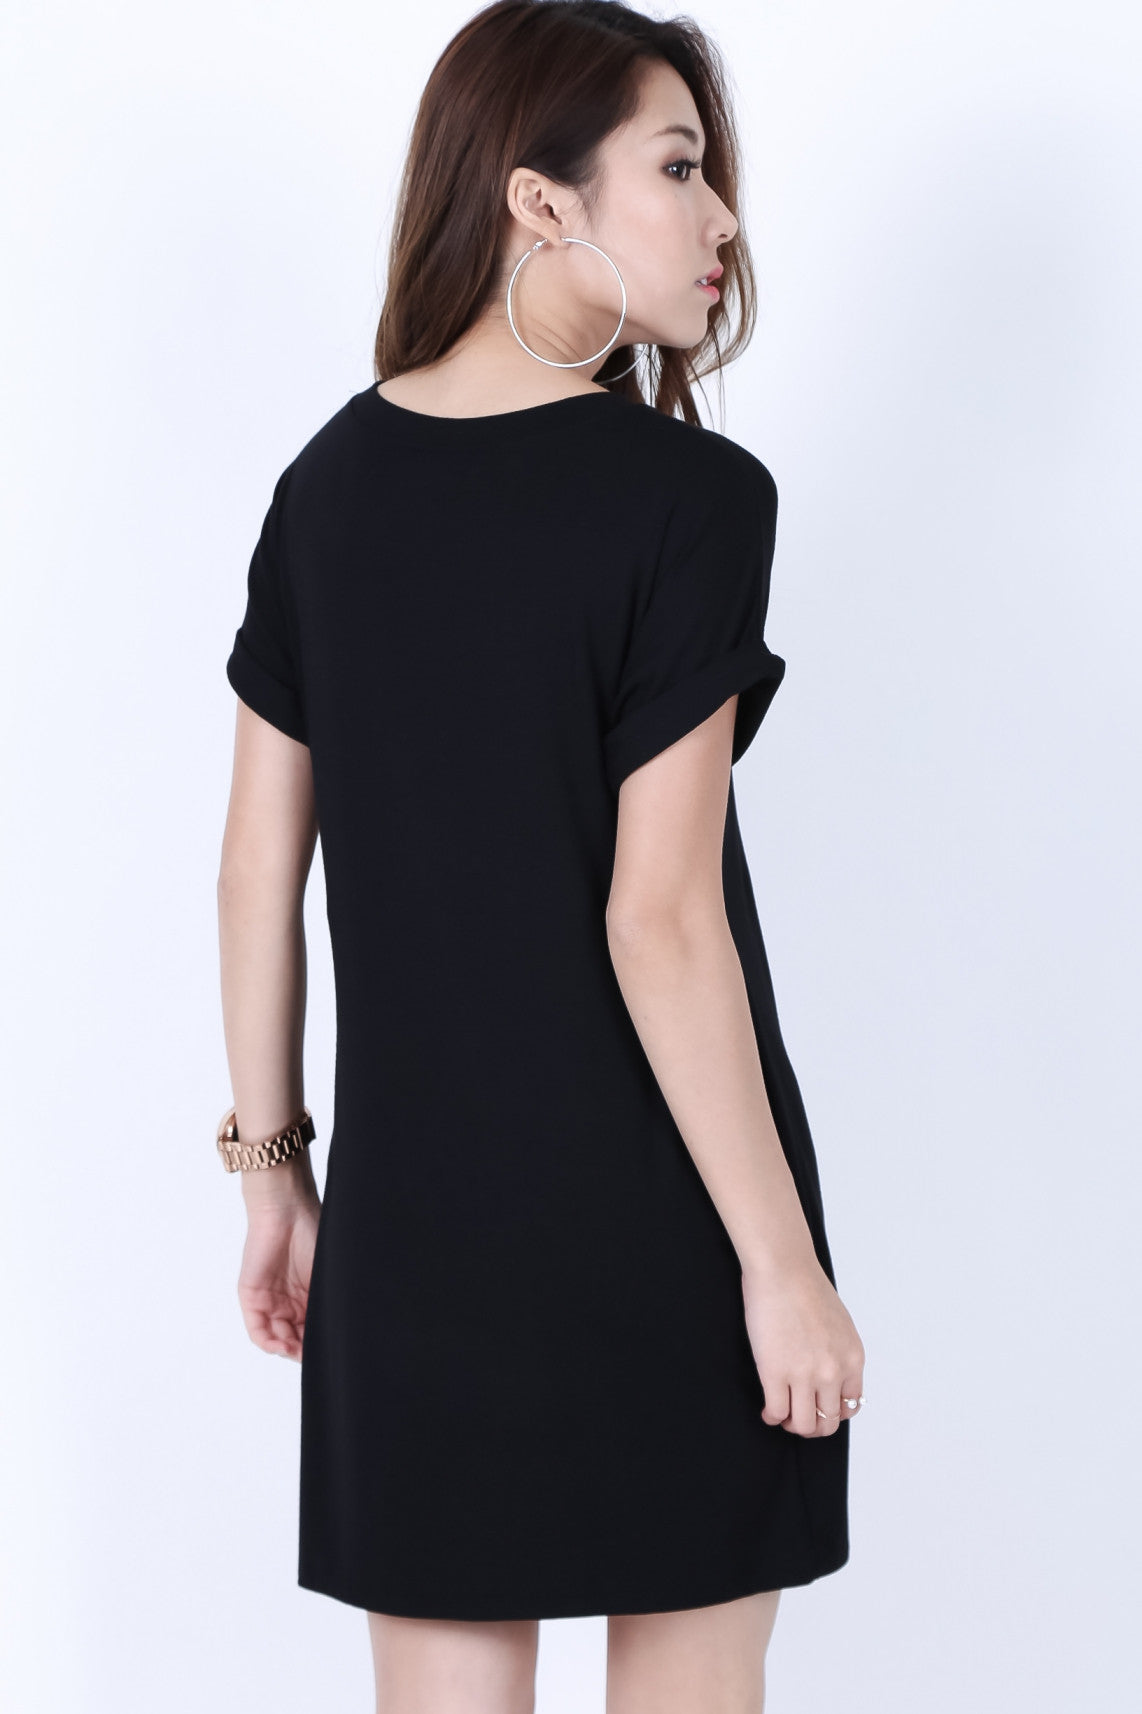 *RESTOCKED* POCKETFUL OF SUNSHINE DRESS IN BLACK - TOPAZETTE